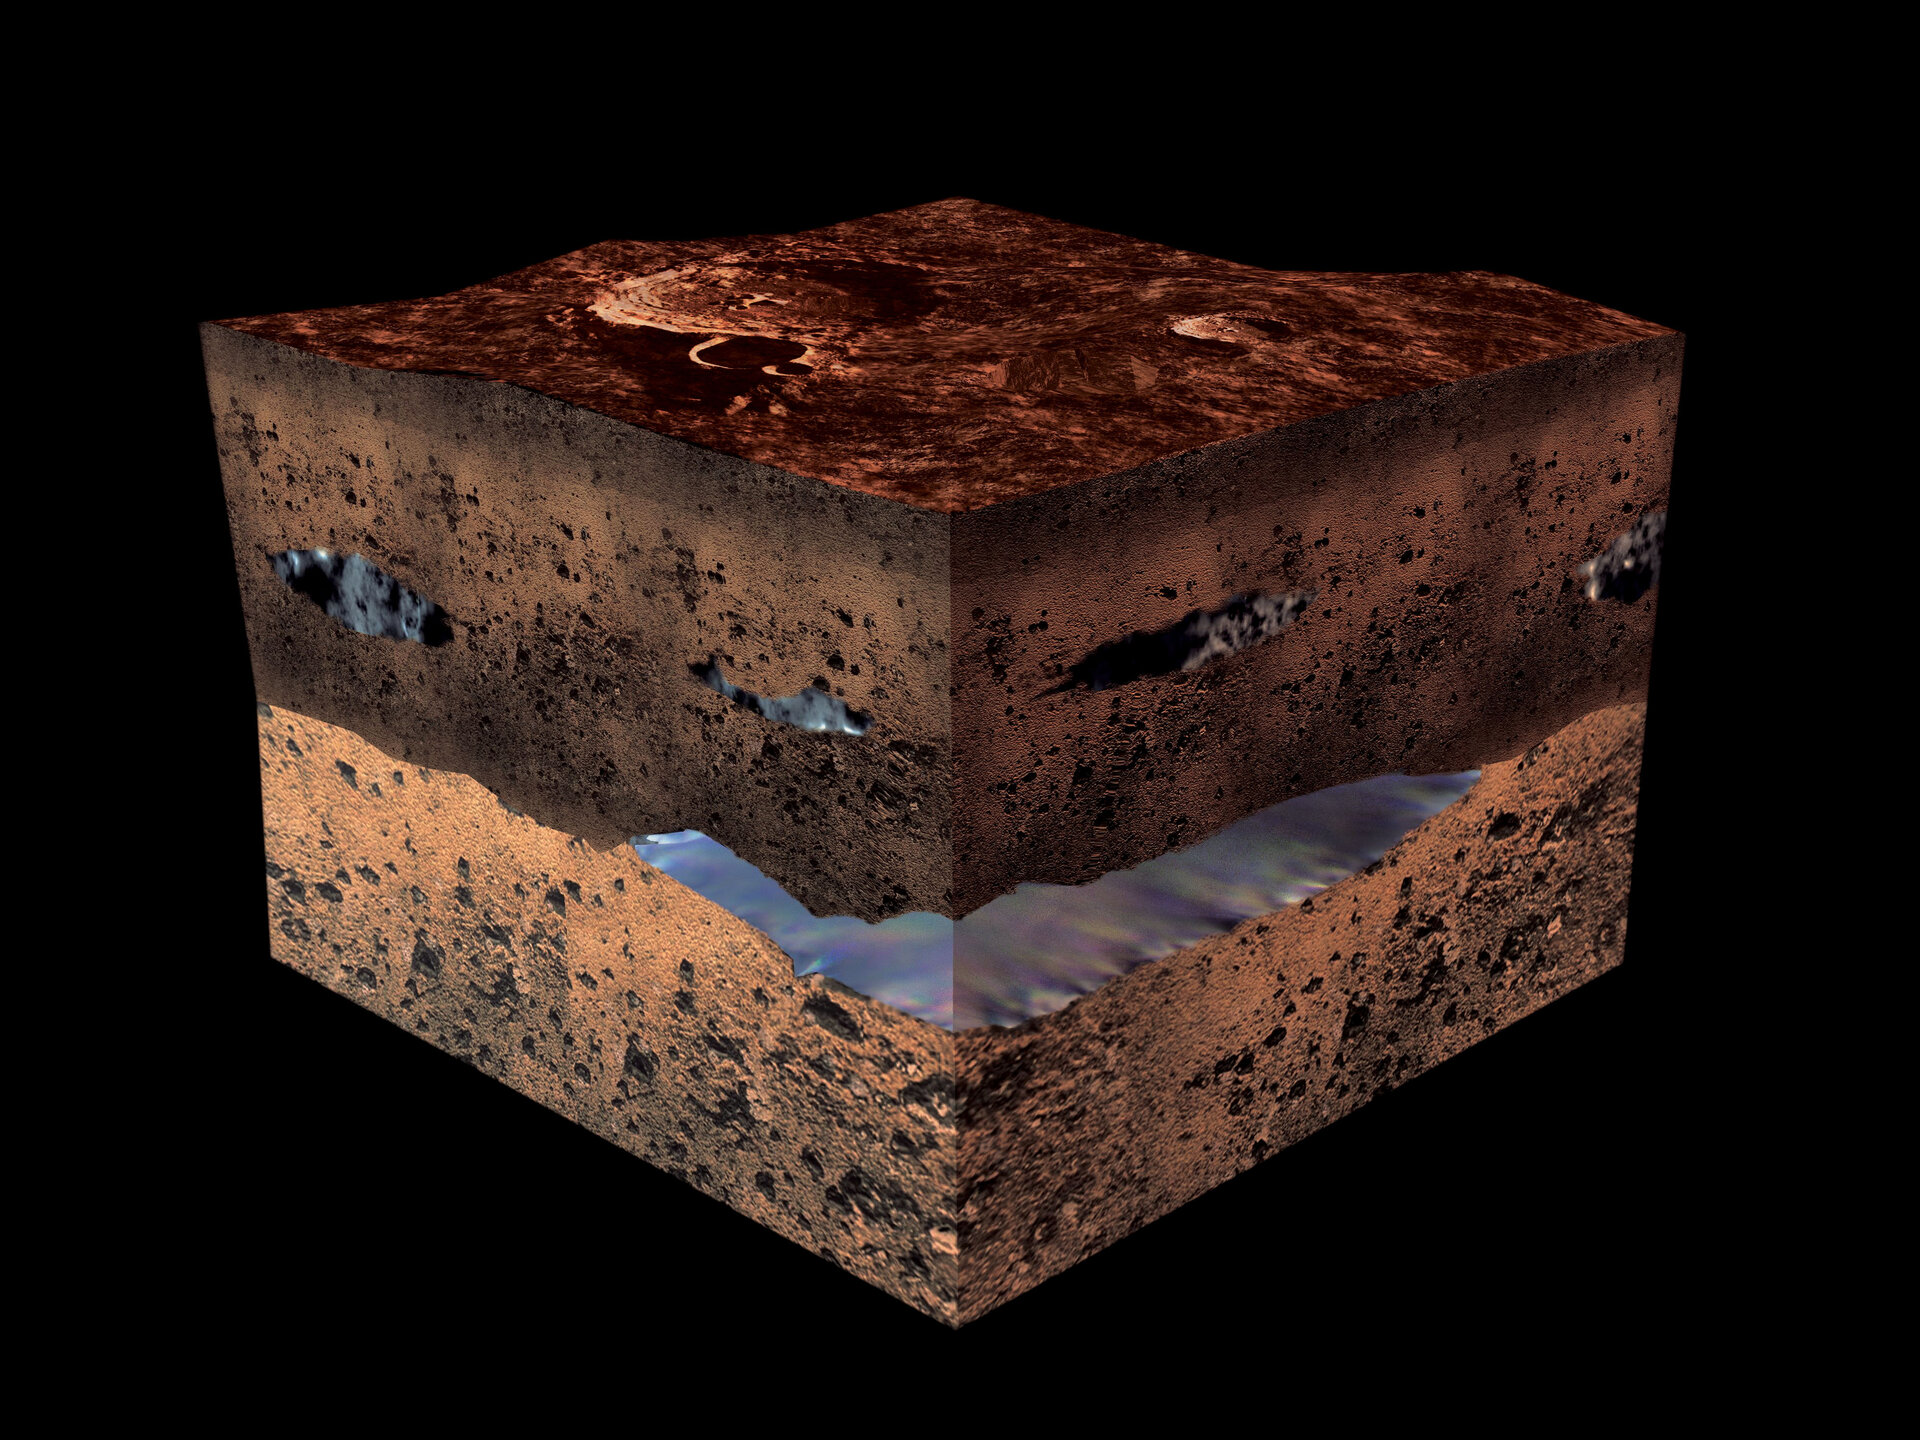 Artist's impression of water under the martian surface